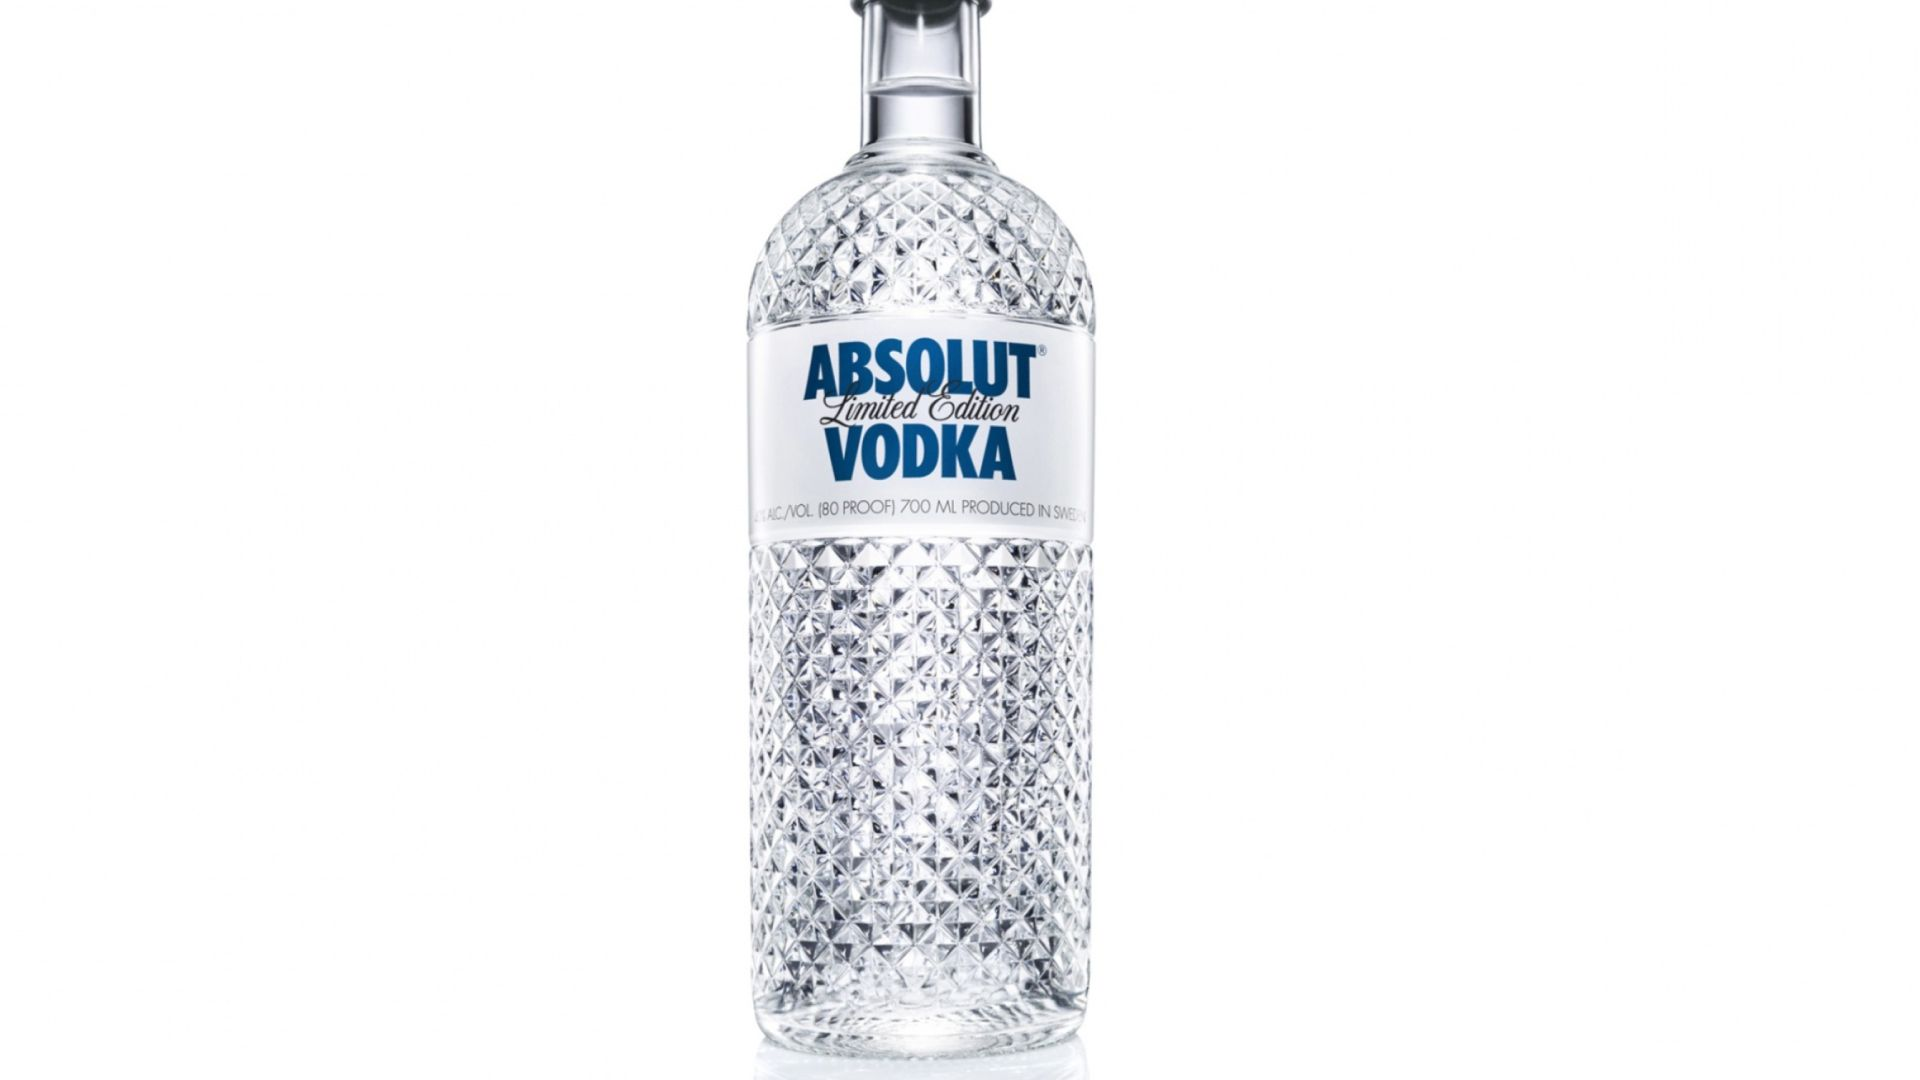 Absolut Vodka Art, Photo